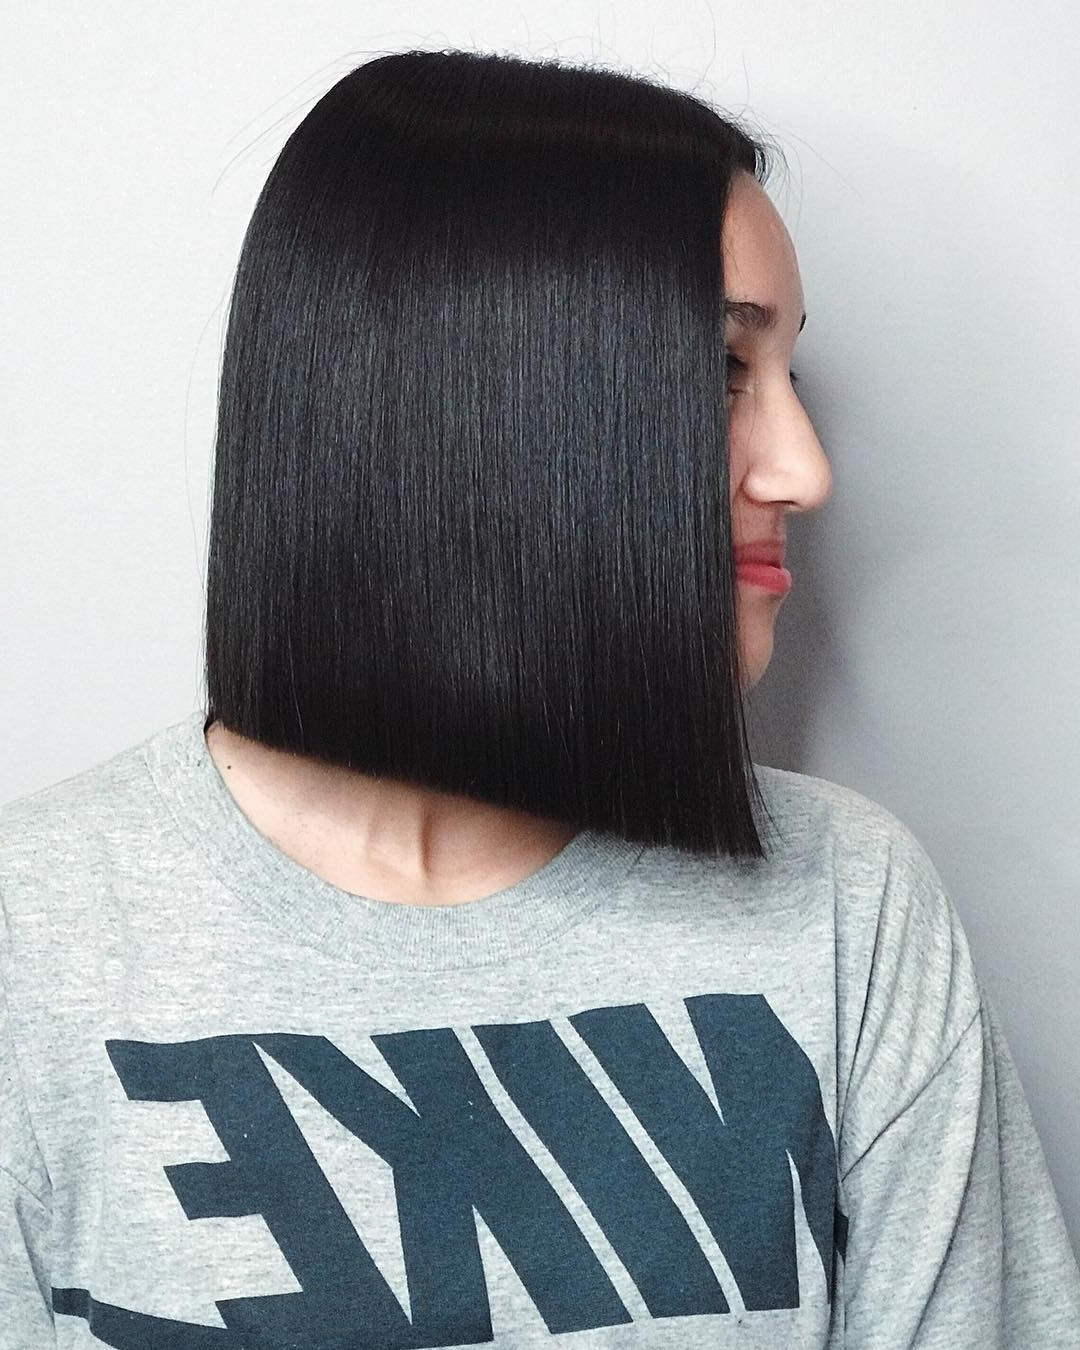 Preferred Middle Parted Relaxed Bob Hairstyles With Side Sweeps With 100+ Hottest Short Hairstyles For 2019: Best Short Haircuts (View 6 of 20)